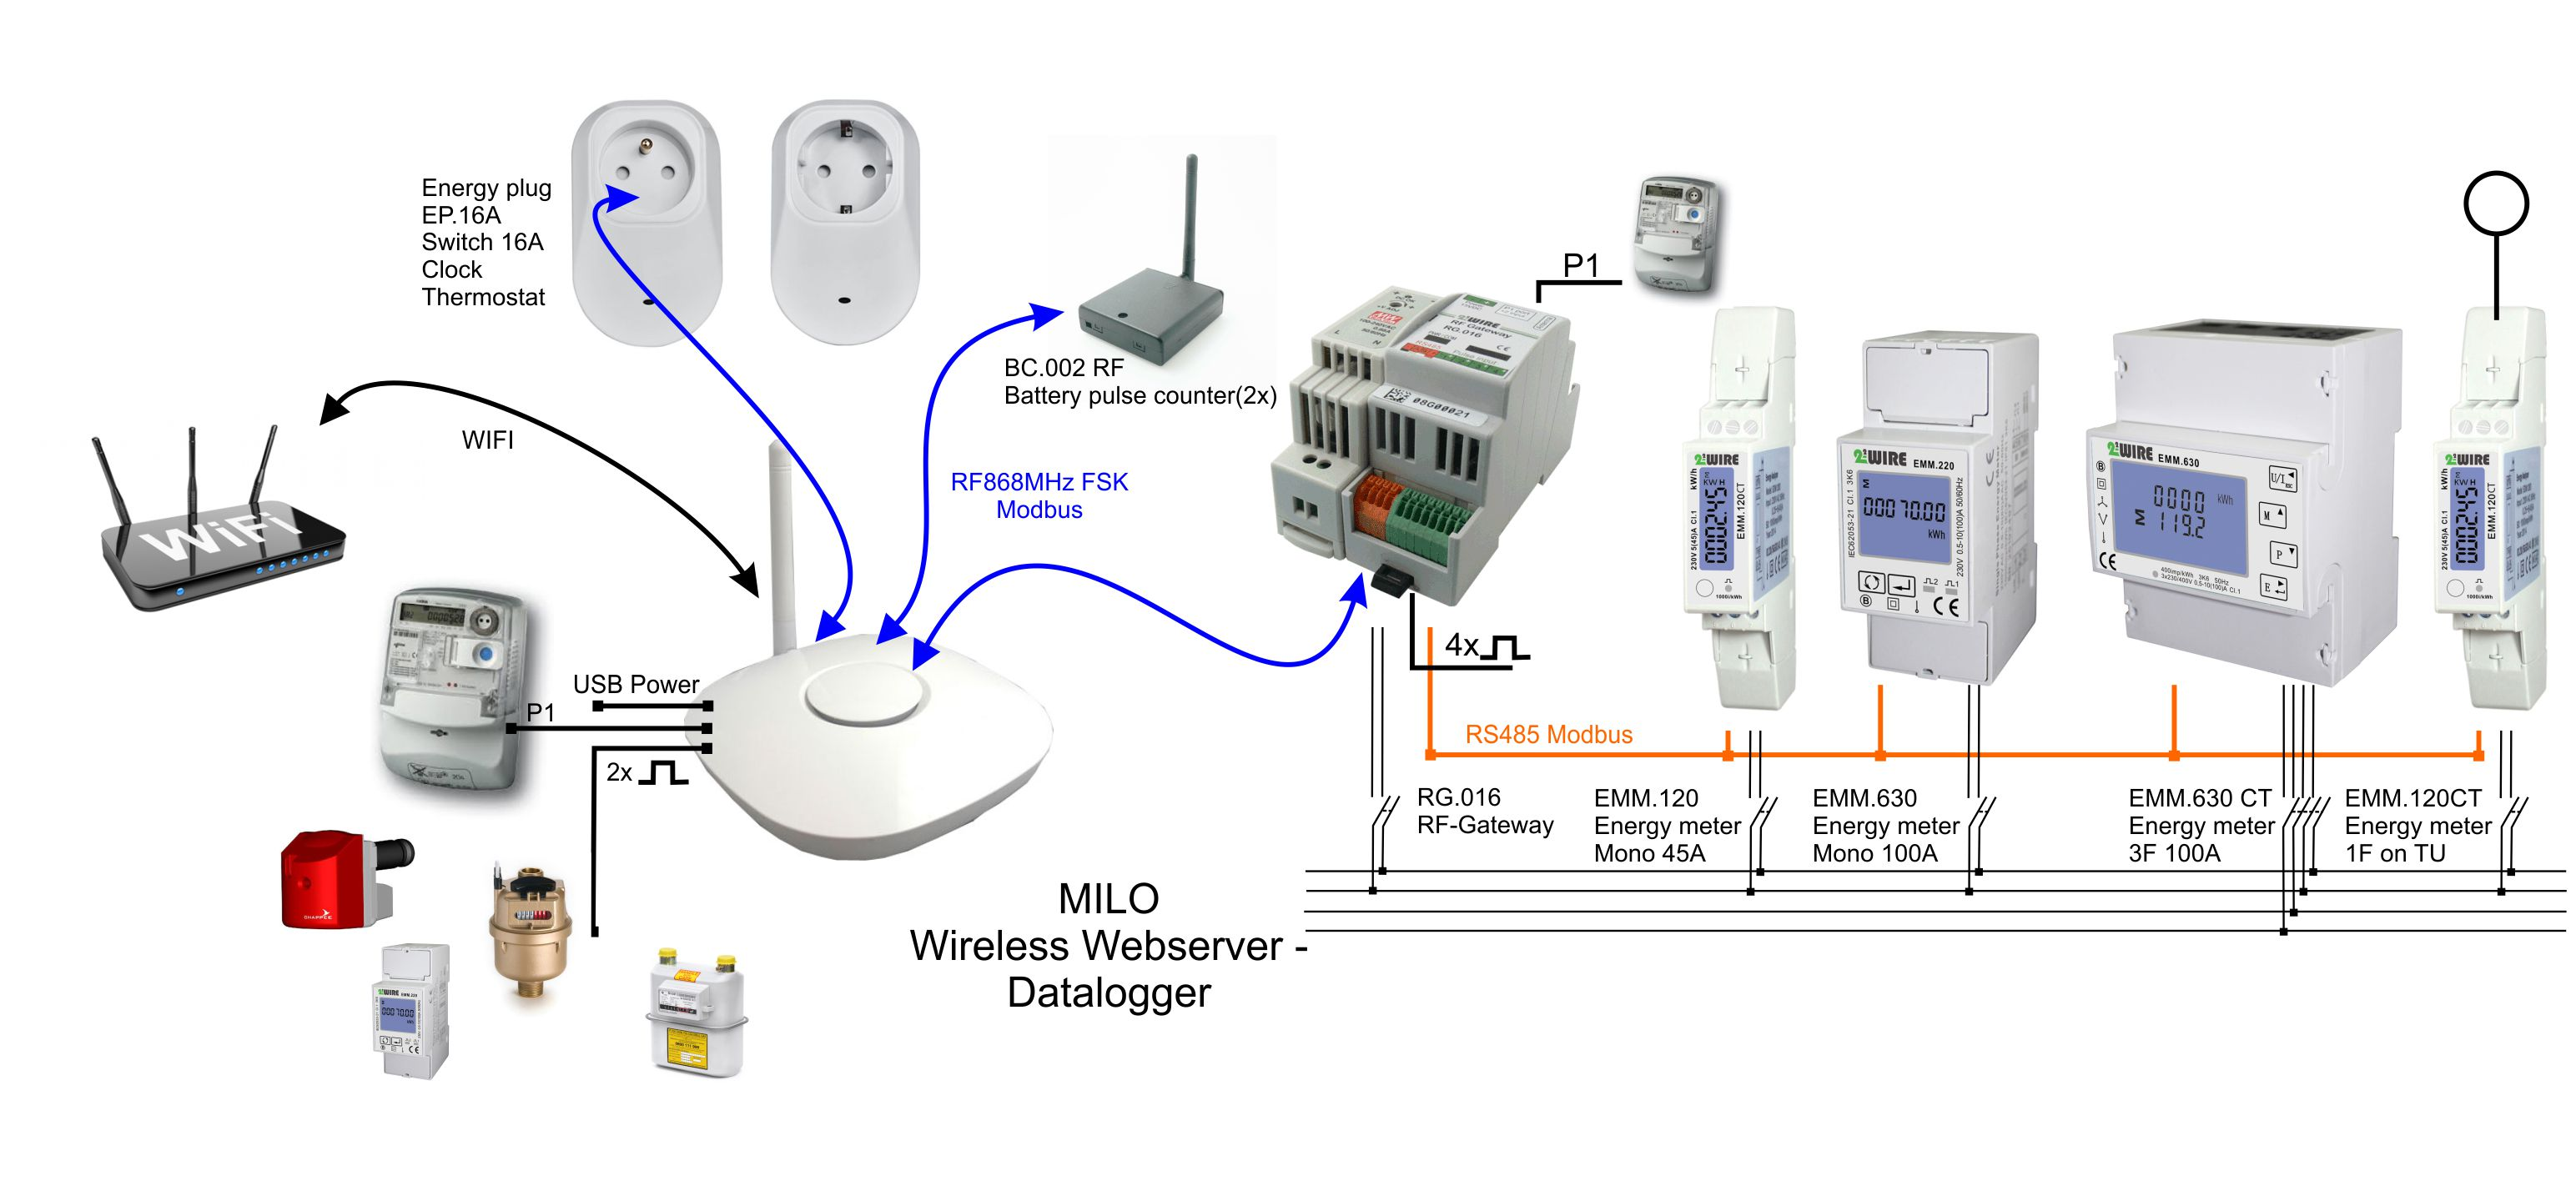 Milo 2 Wire In Your Thermostat Bundle Otherwise You Will Have To Run A Depending On Whether Or Not The Direct Pulse Inputs And P1 Port Module Itself Are Used Is Set Up Either Centrally Vicinity